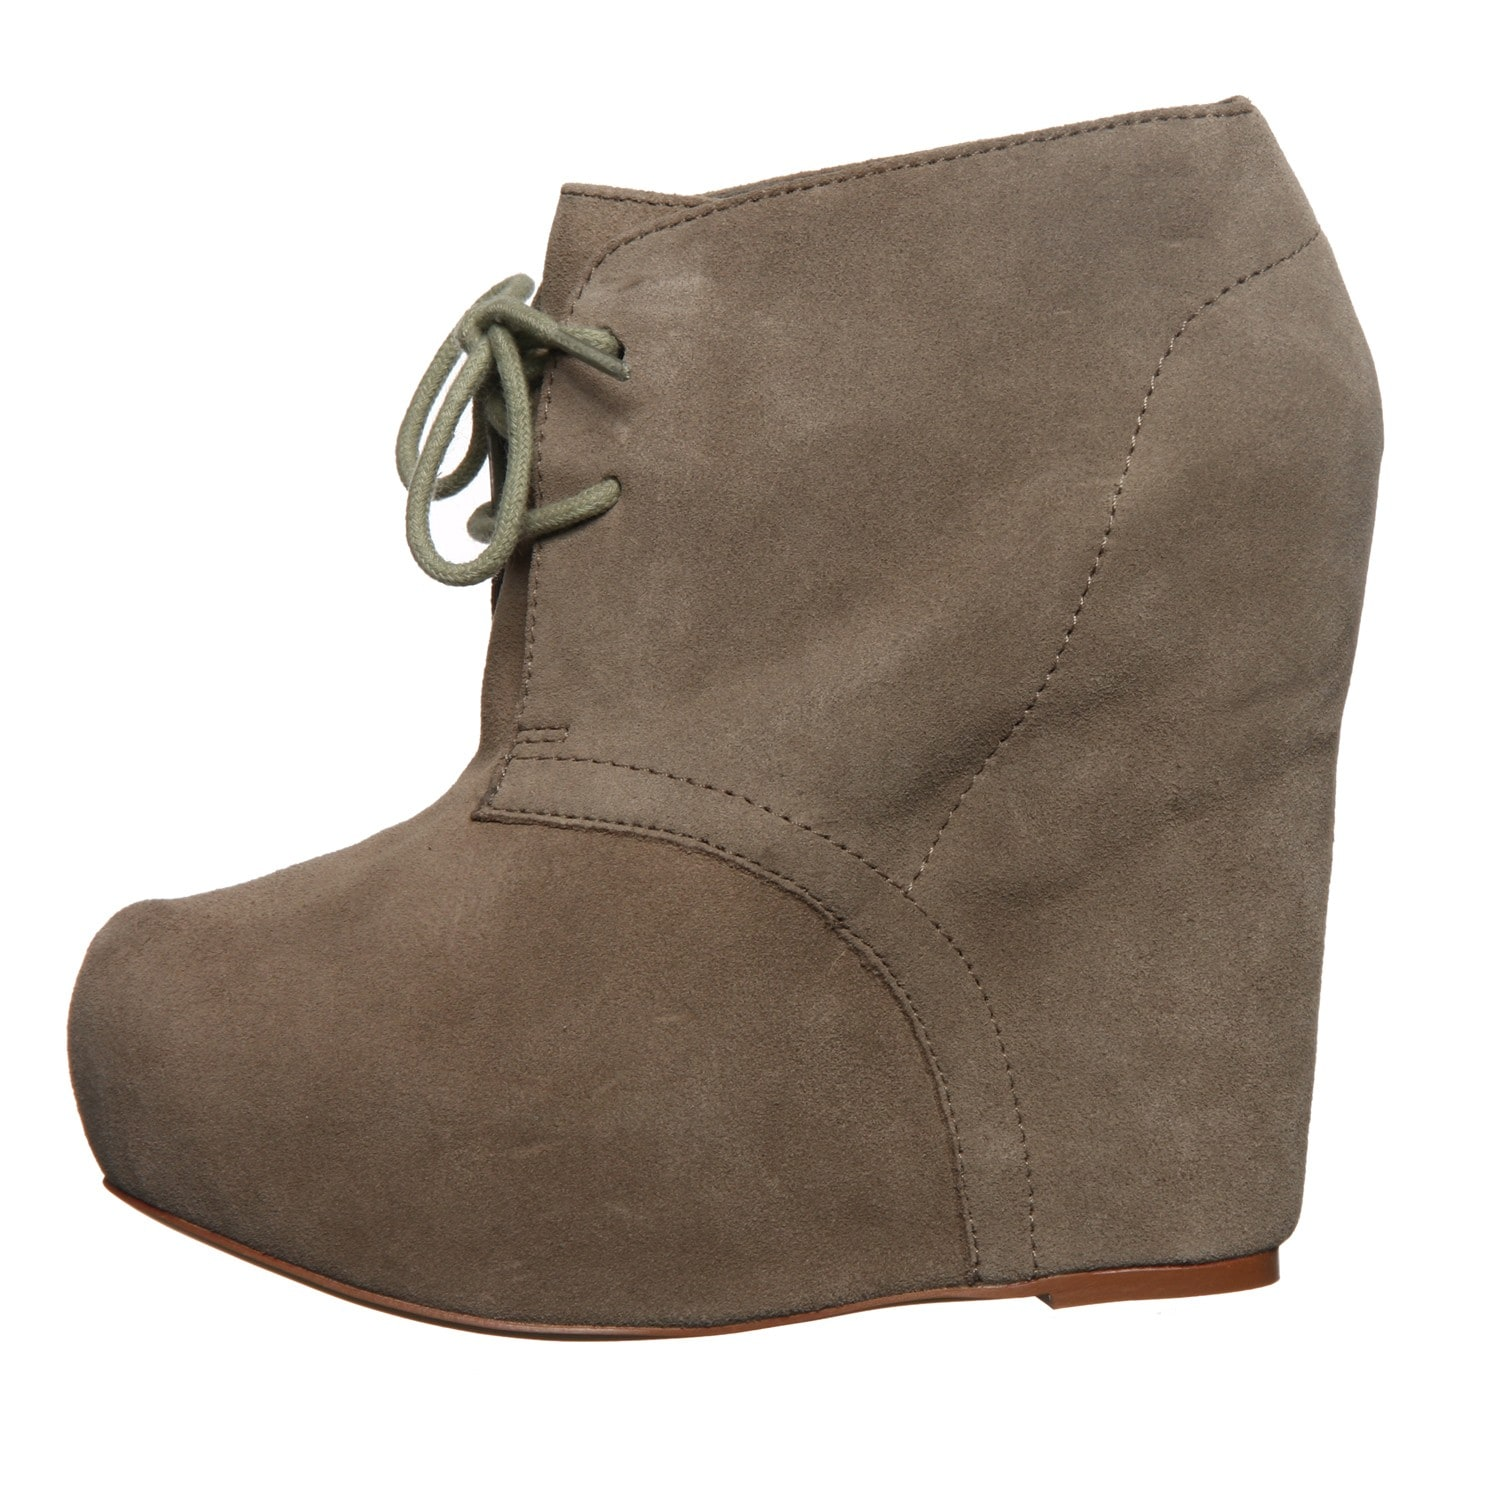 612978905e5b Shop Steve Madden Women s Wedge Lace-up Booties - Free Shipping Today -  Overstock - 6325965